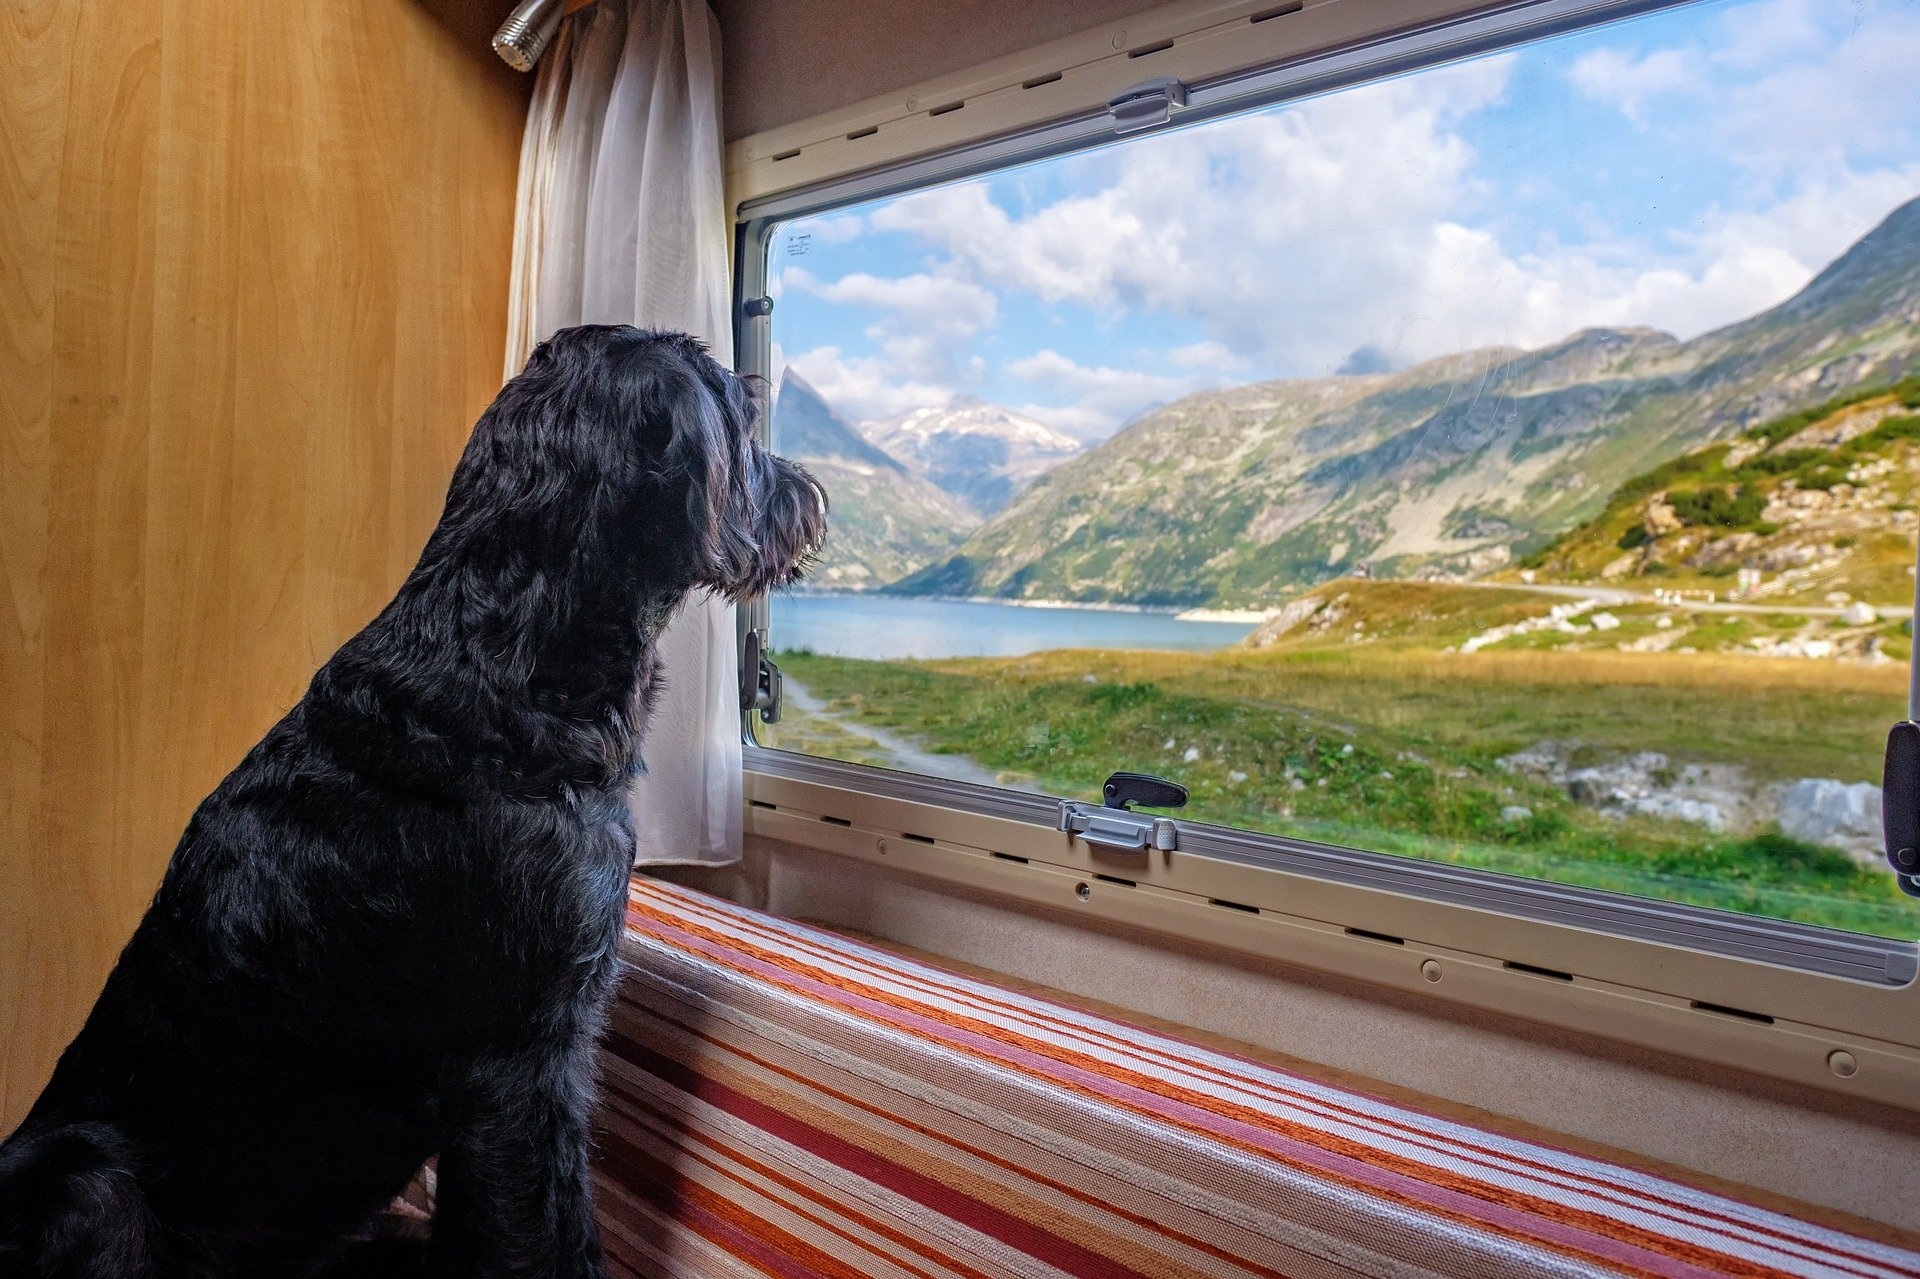 A Few Benefits of a Family Caravan or Motorhome Vacation